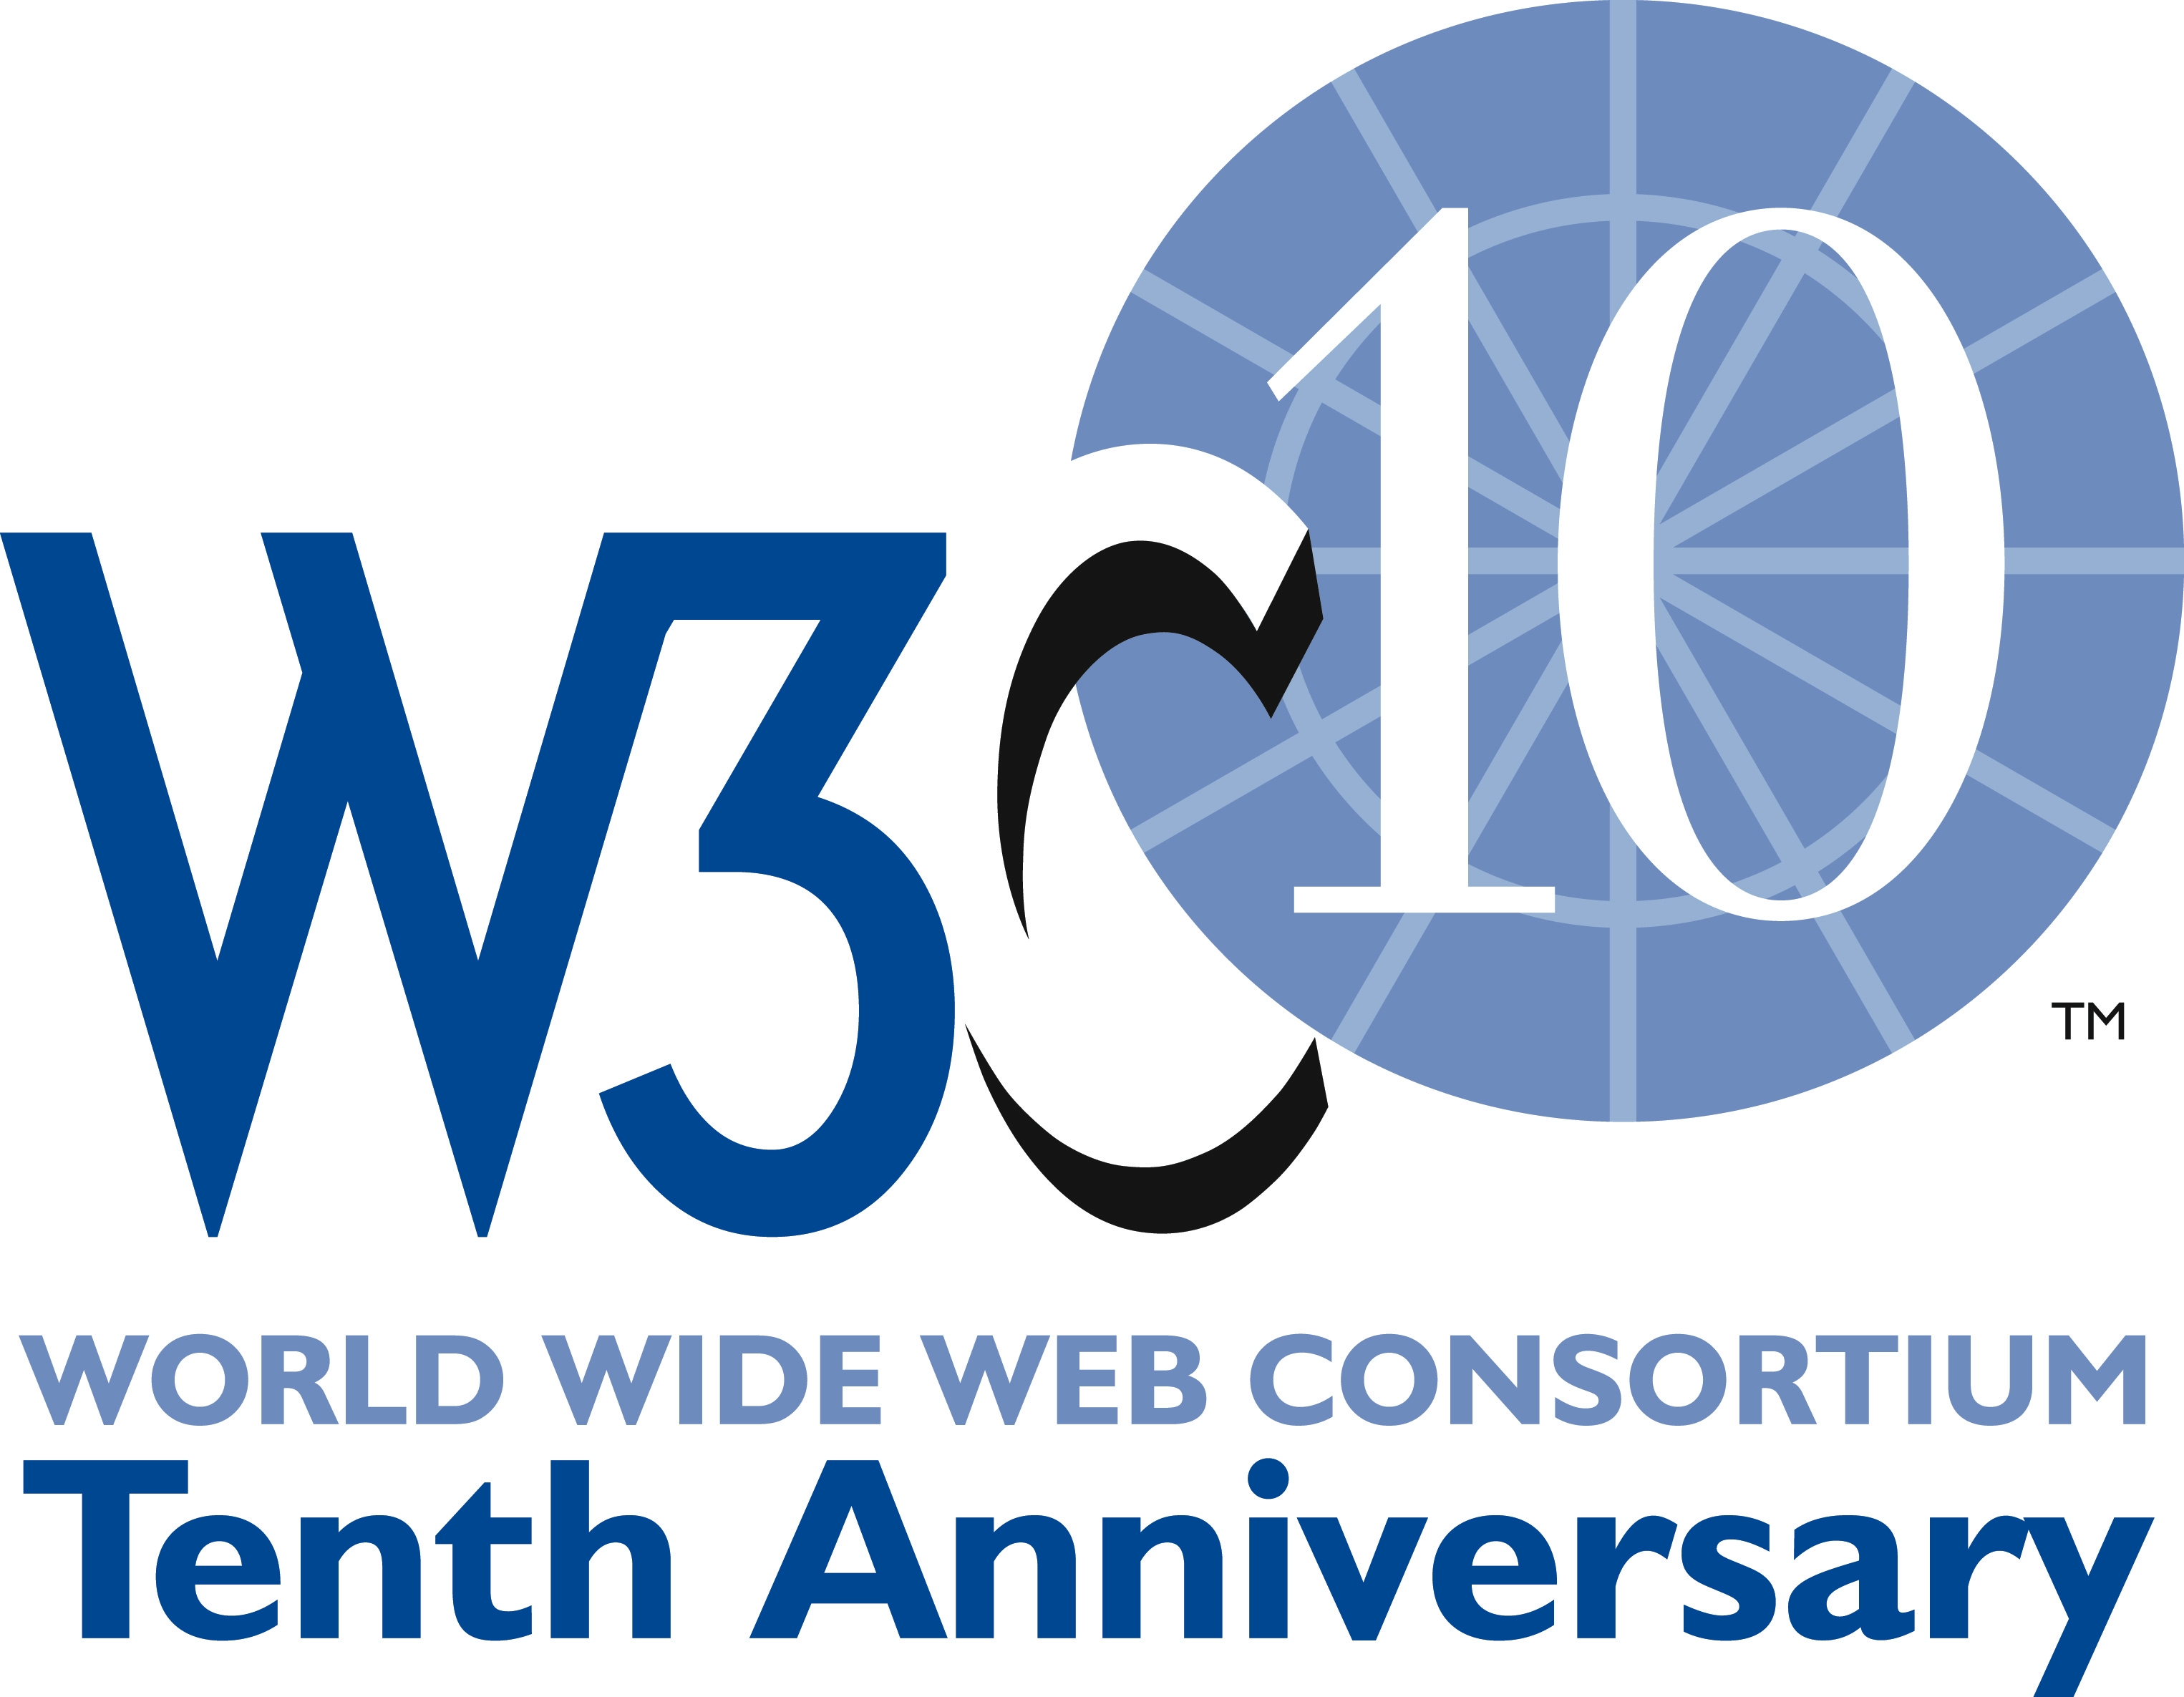 The Web According To W3c